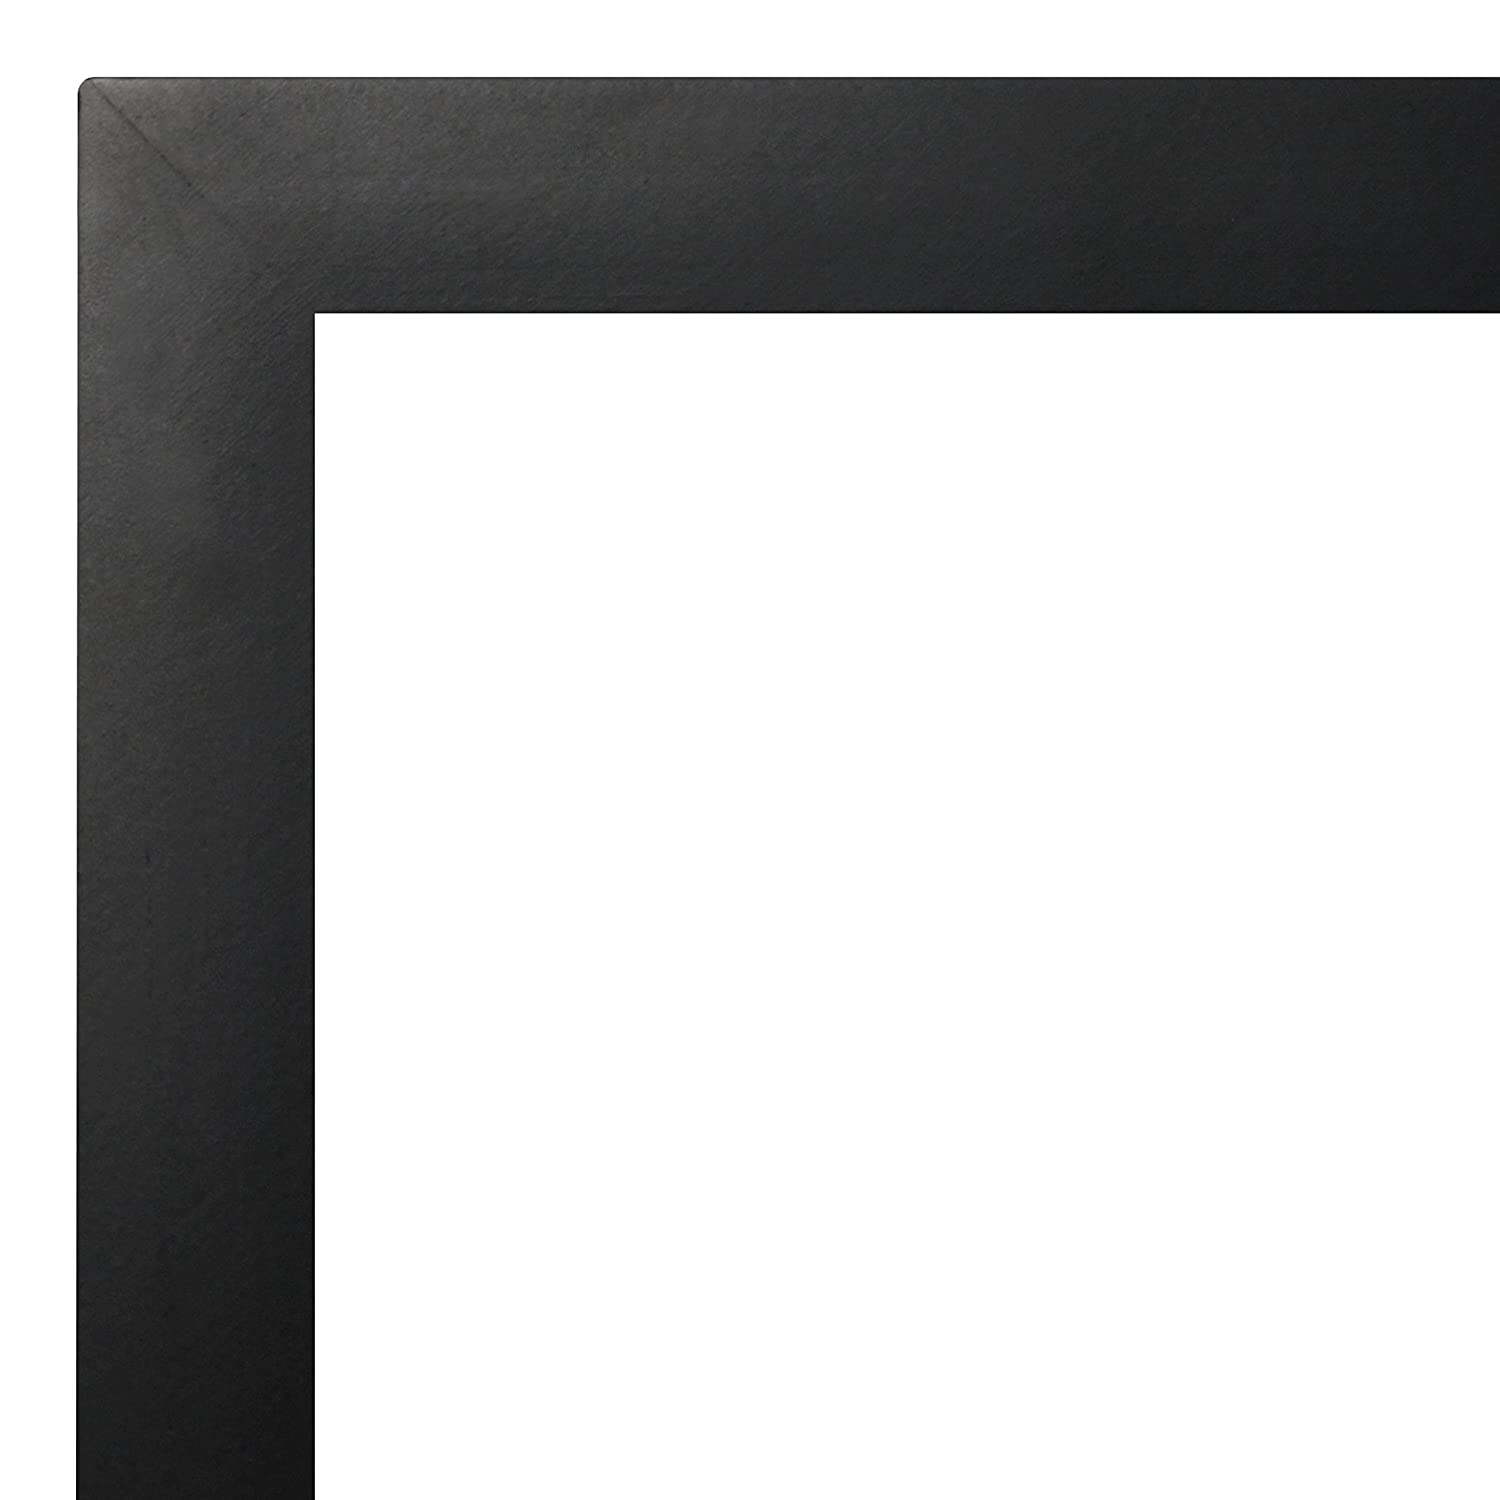 Amazon mcs 11x17 inch gallery wood wall frame black 65613 jeuxipadfo Image collections